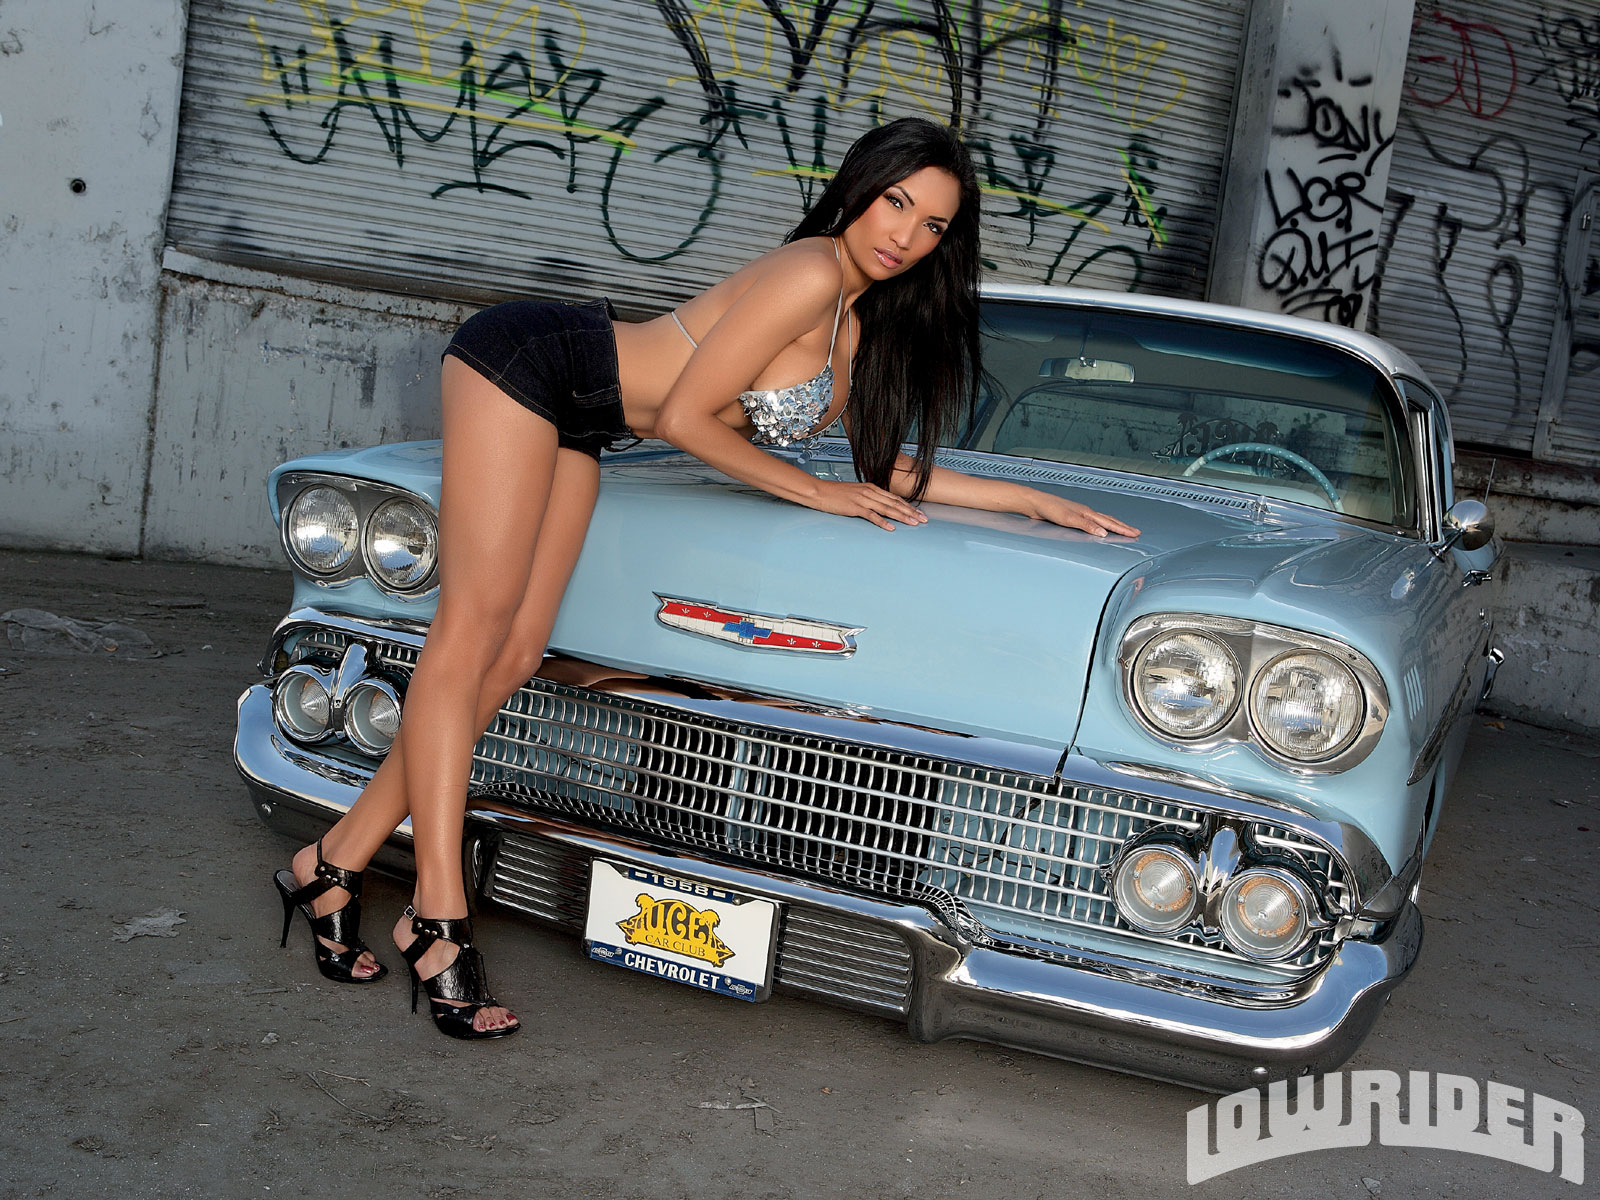 Nude girls posing with cars and motorcycles